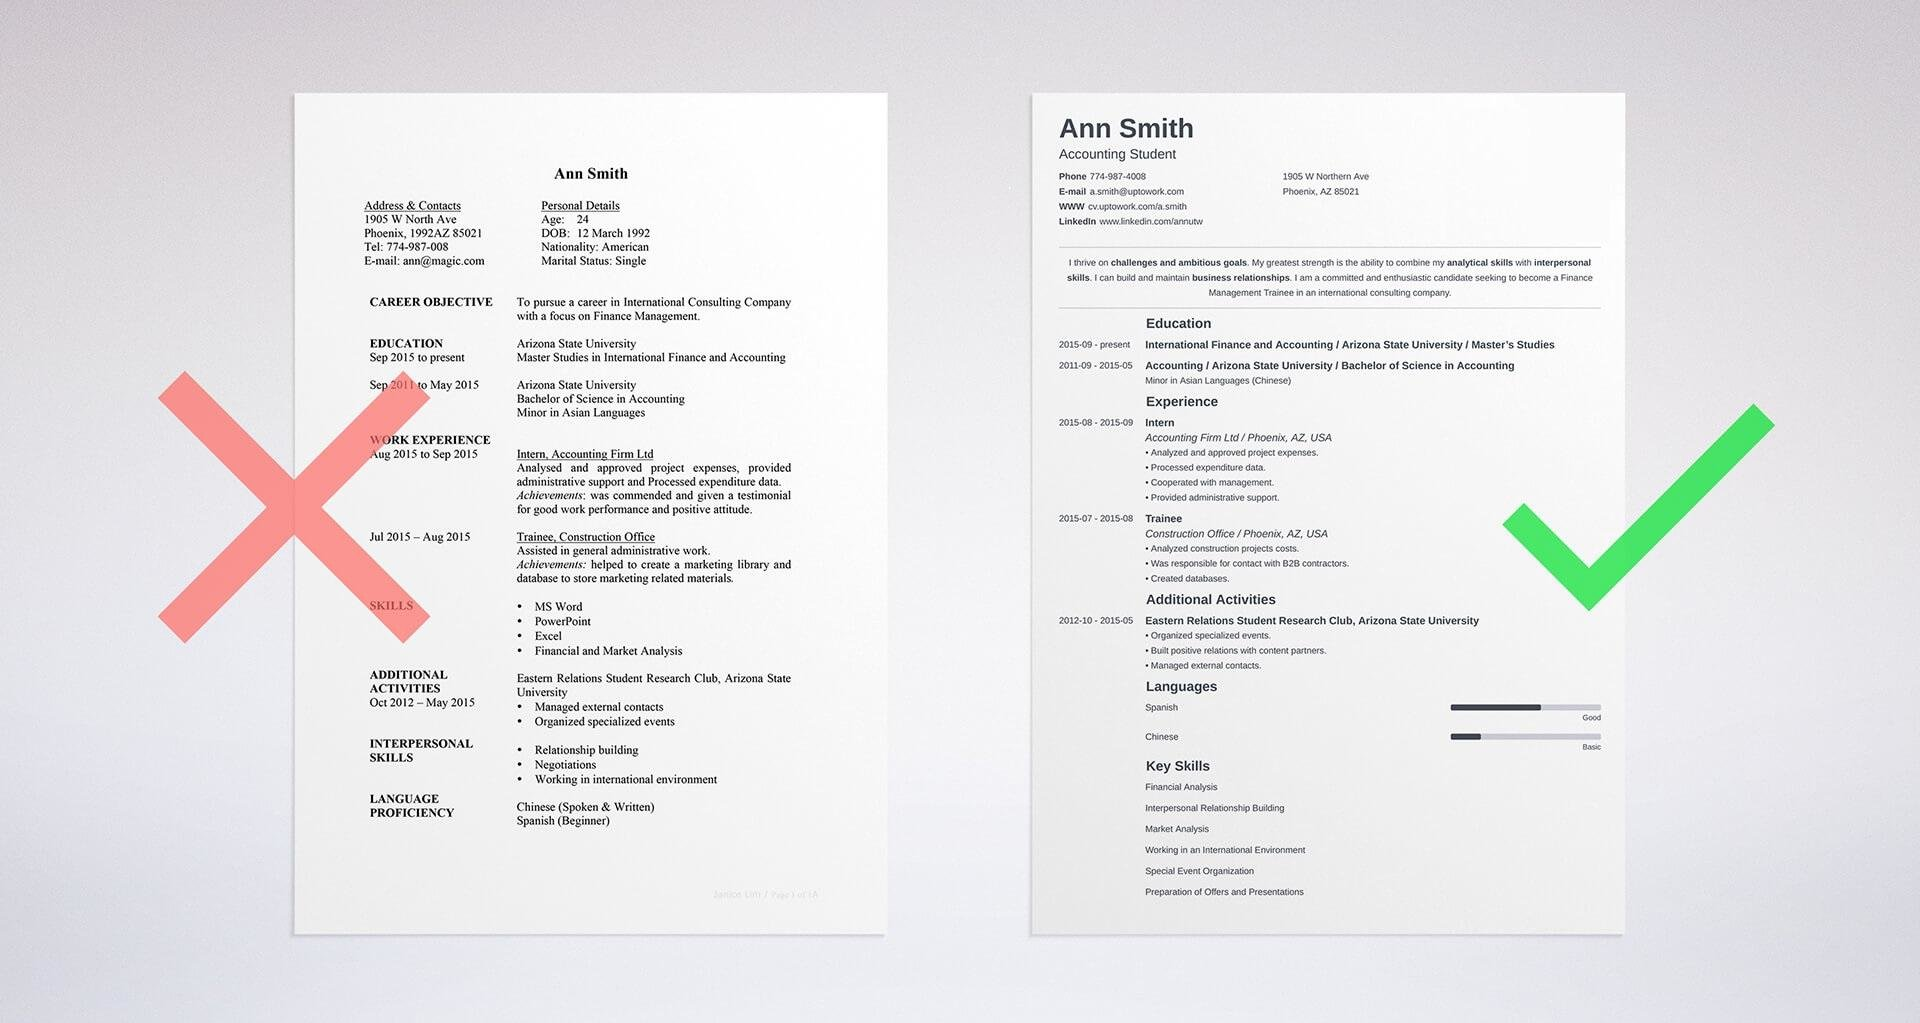 How To Make A Resume For A Job Professional Writing Guide